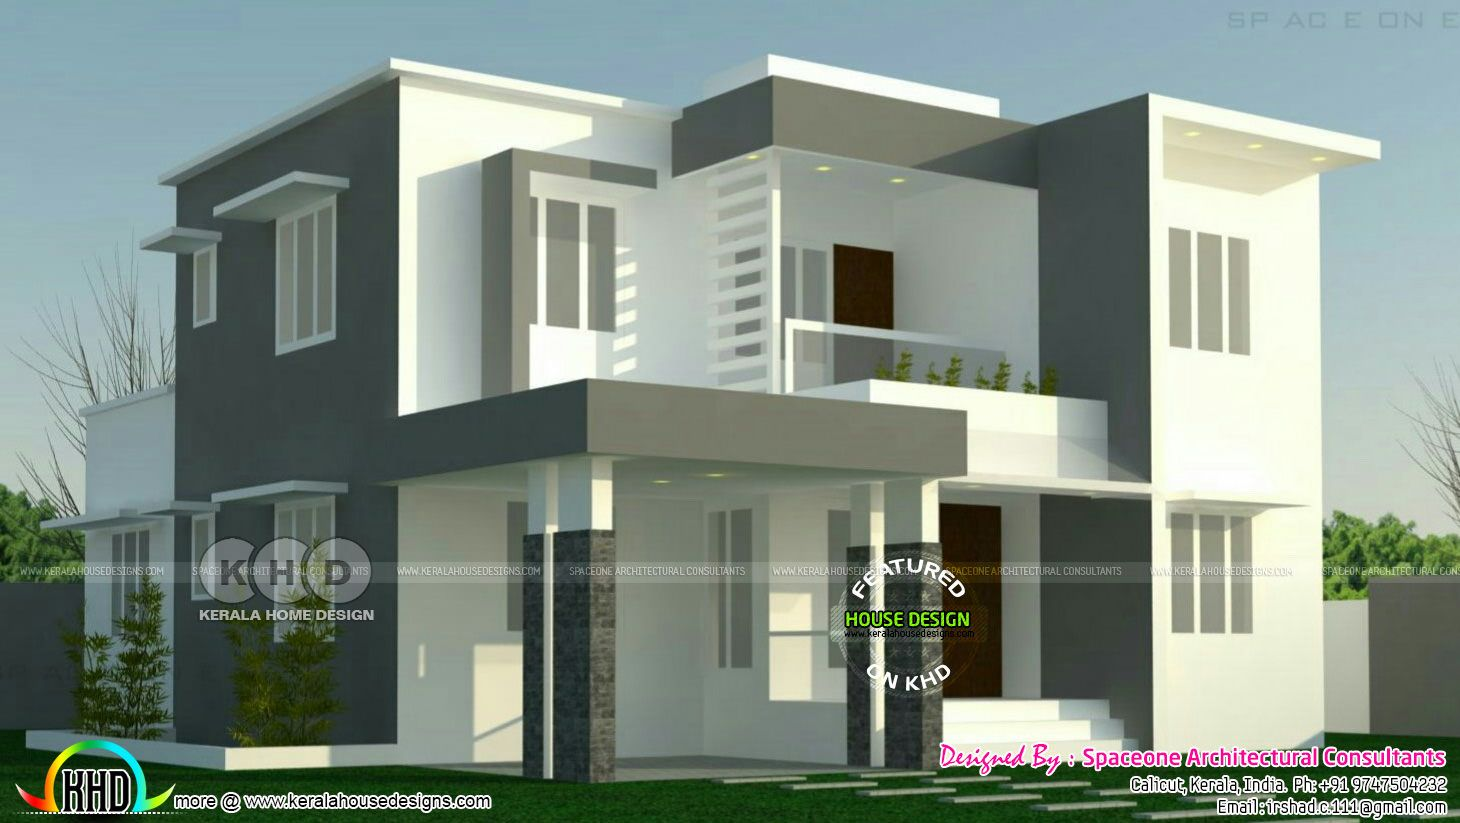 4 Bedroom Flat Roof Modern Home 2000 Sq Ft Flat Roof House Designs Duplex House Design Bungalow House Design